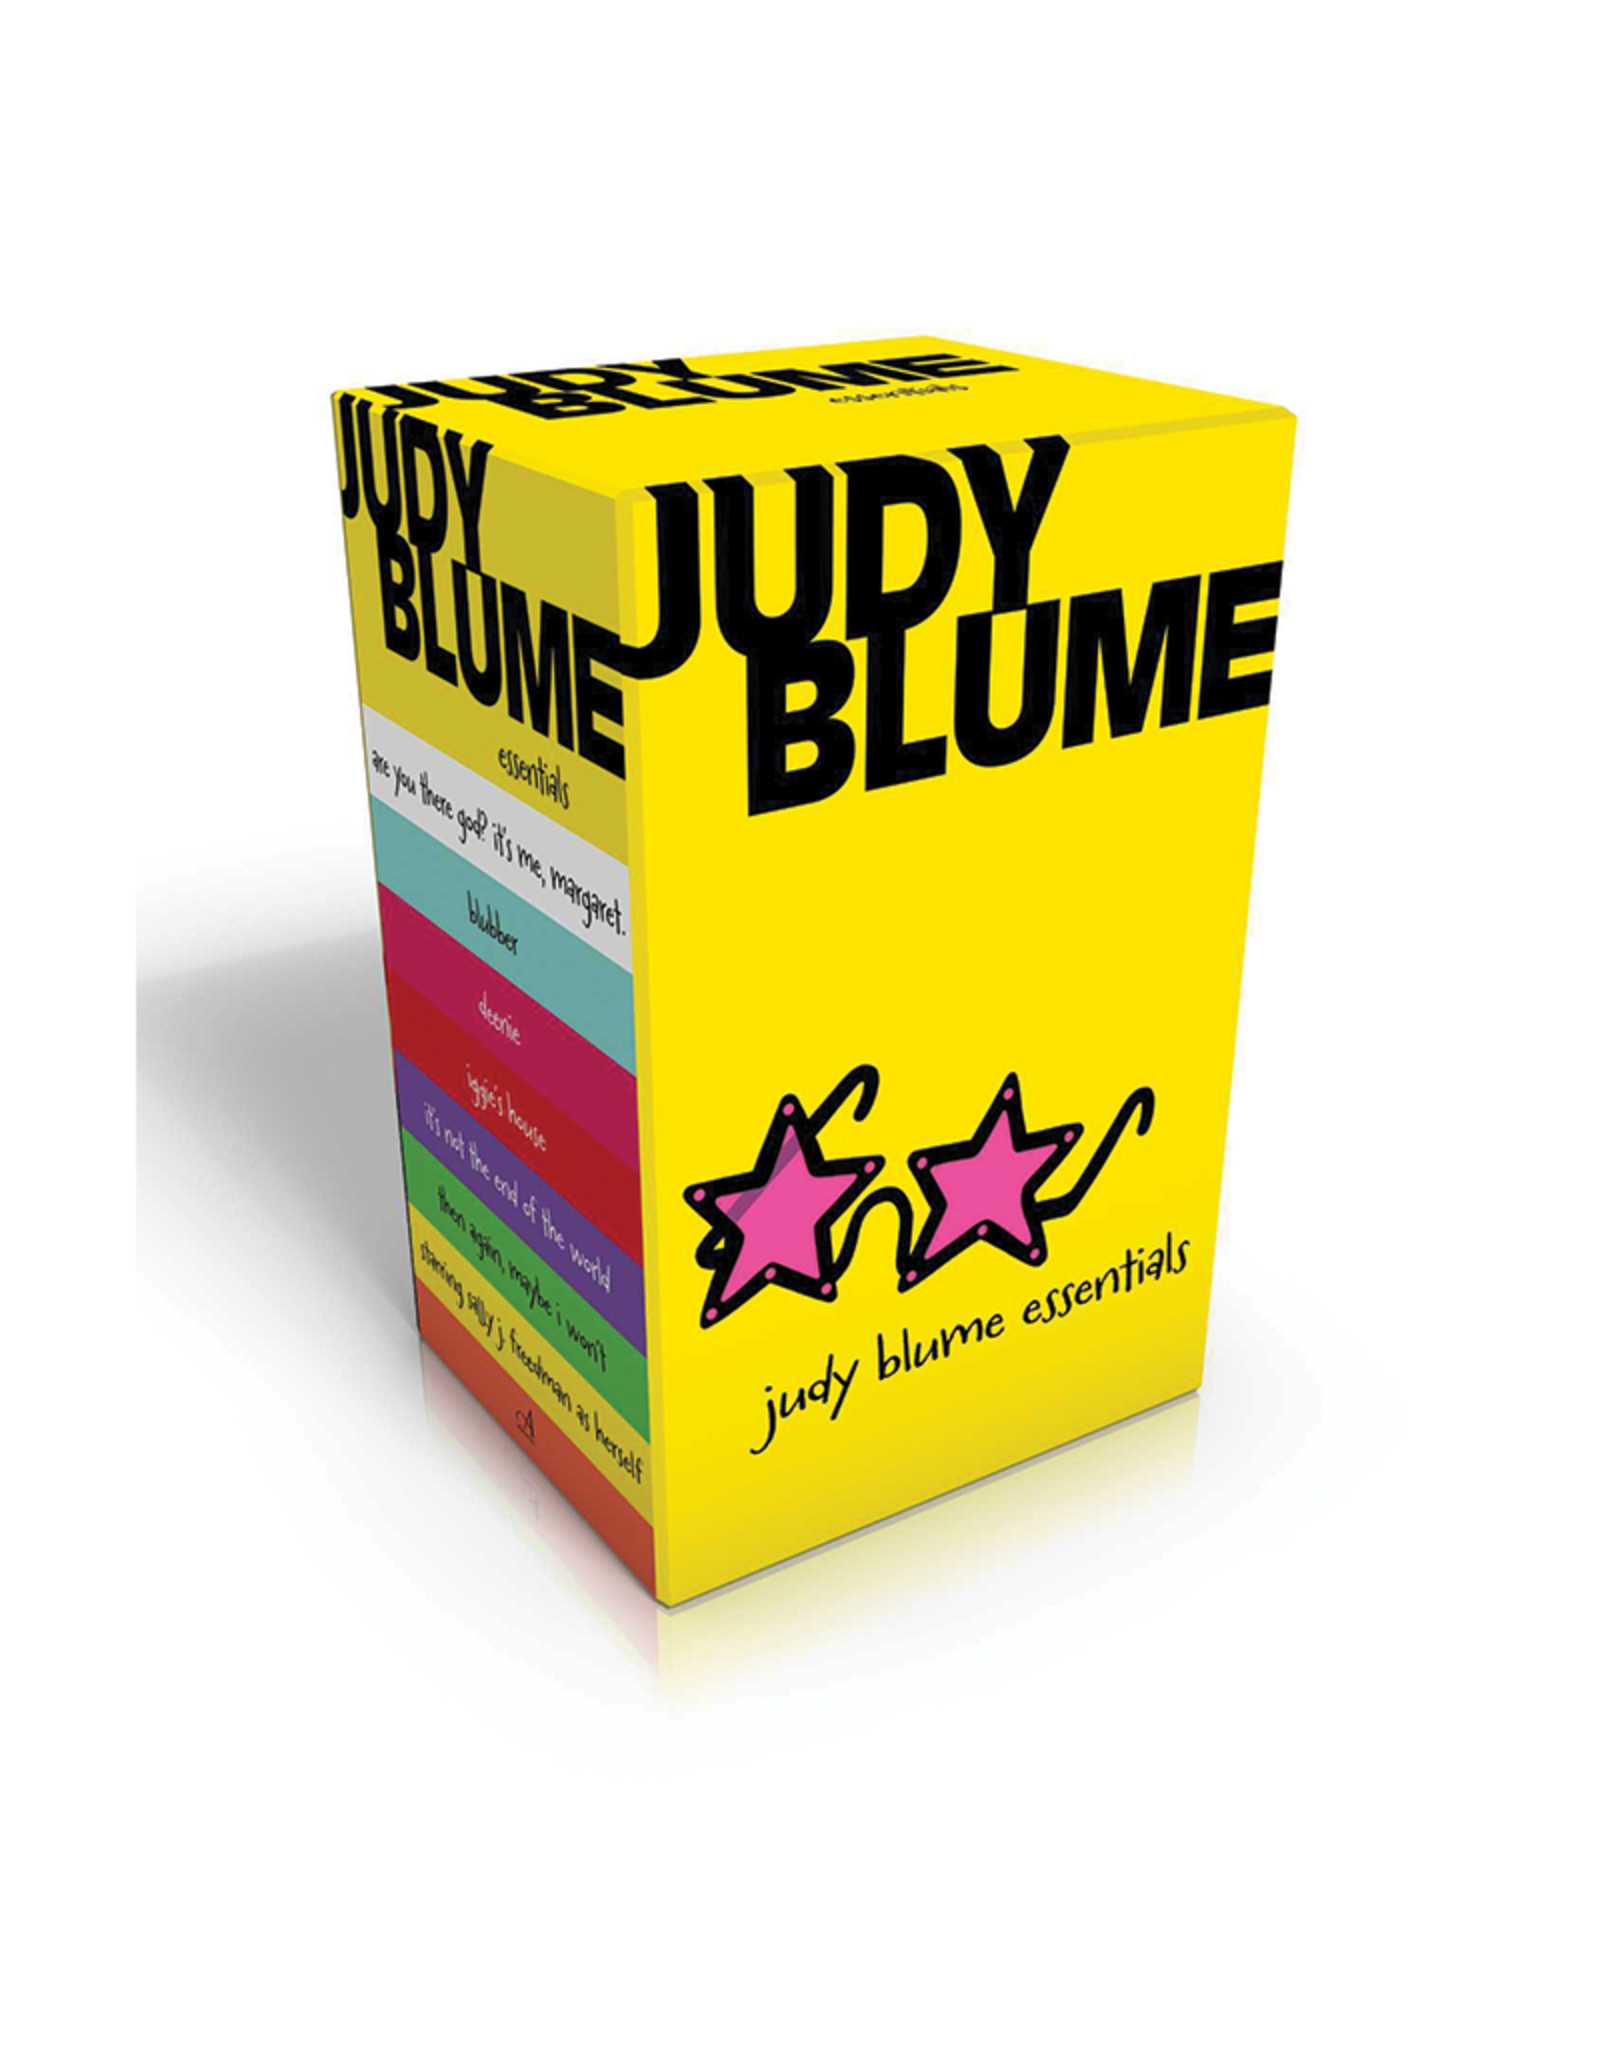 Judy Blume Essentials Boxed Set